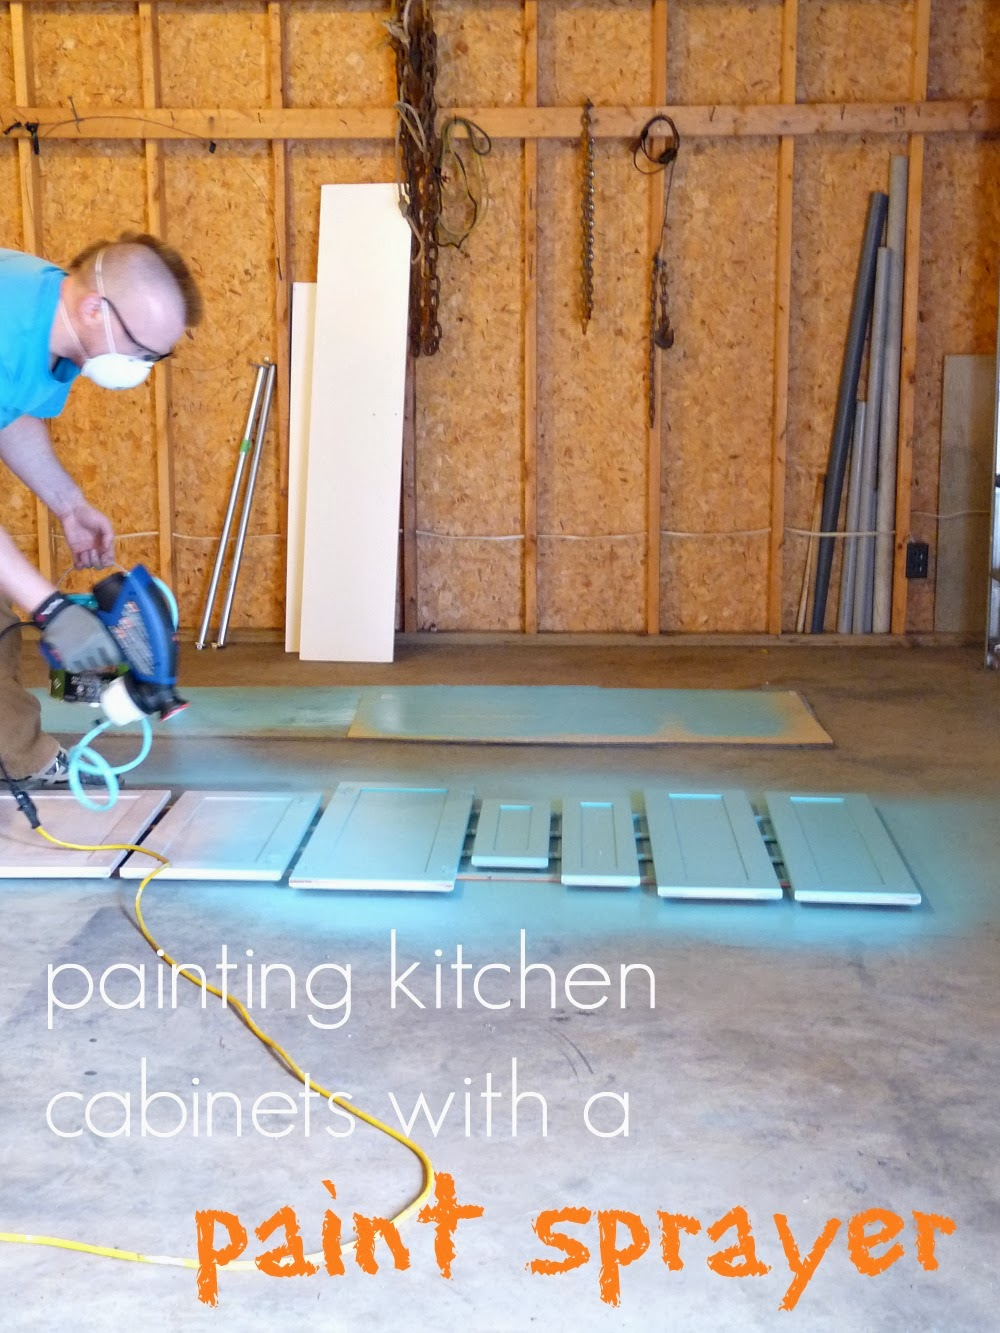 Painting The Kitchen Cabinets With A Paint Sprayer Dans Le